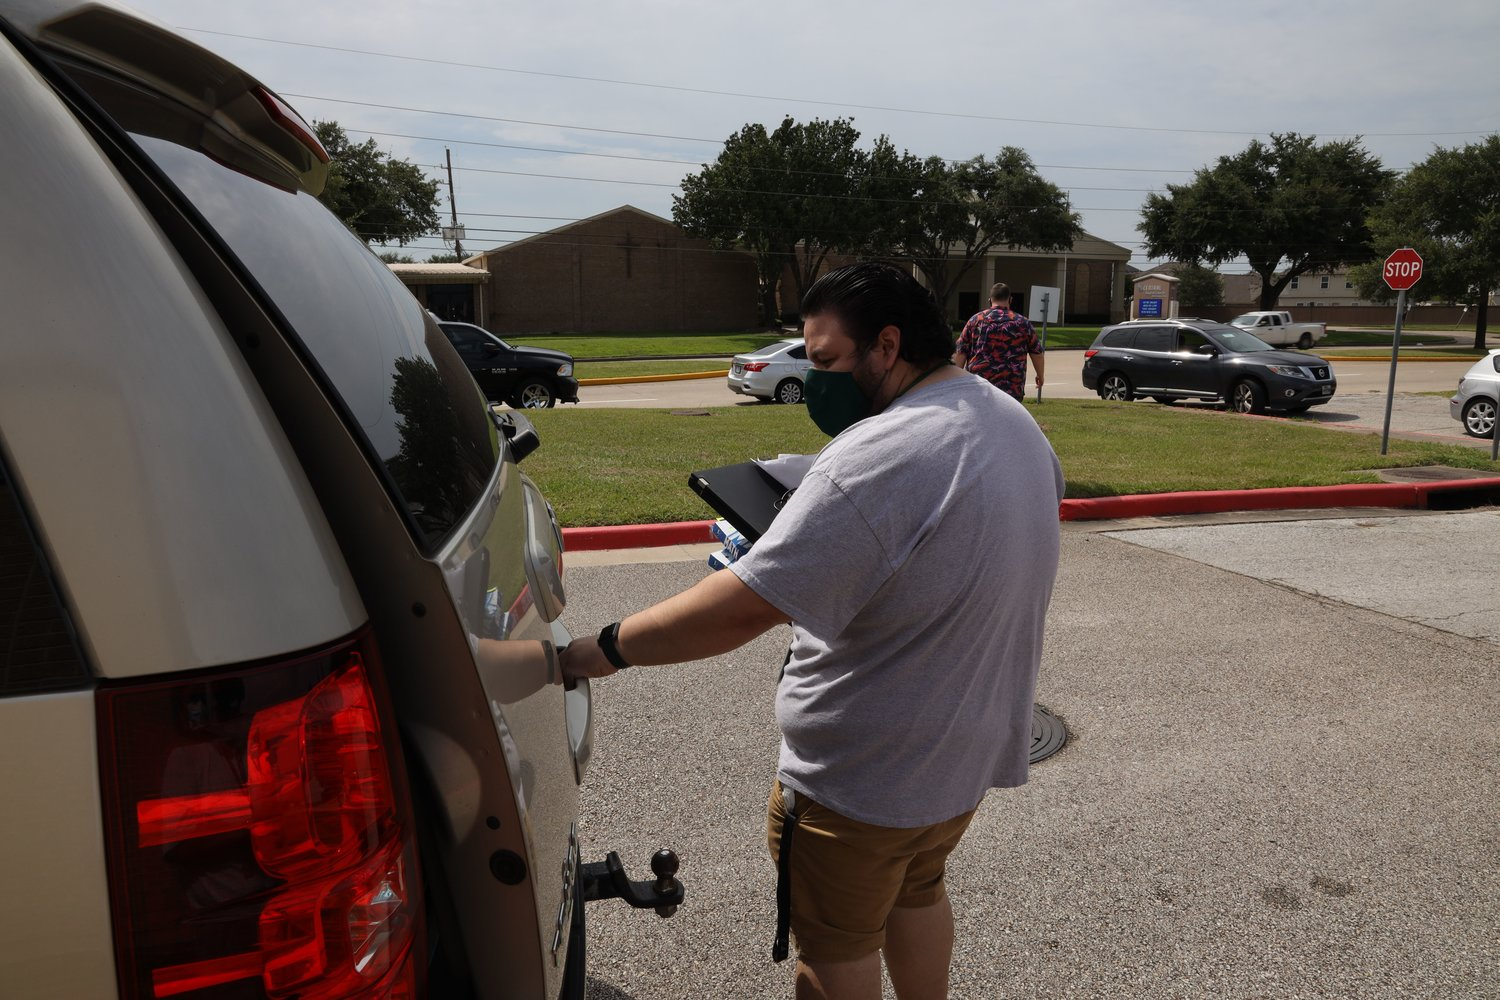 Katy ISD staff brought devices out to vehicles for curbside pick up on Monday, Aug. 17. About half of the district's student body will continue to take online classes through the Katy Virtual Academy after students are allowed to - tentatively - return to campuses Sept. 8.